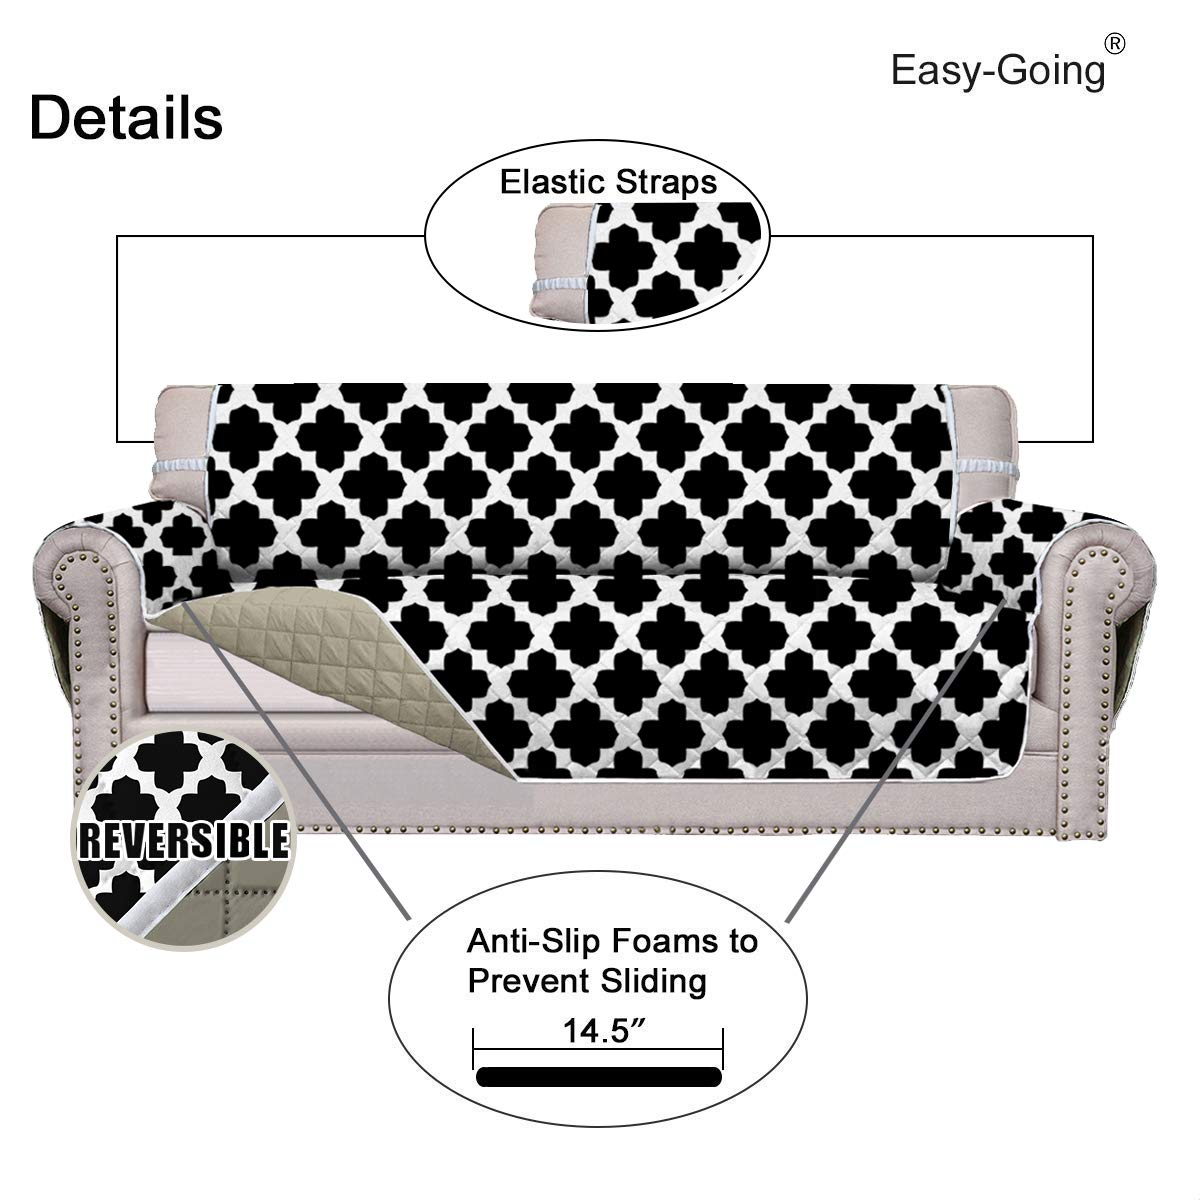 Easy-Going Sofa Slipcover Reversible Sofa Cover Furniture Protector Sofa Shield Couch Shield Water Resistant Elastic Straps Pets Kids Children Dog Cat